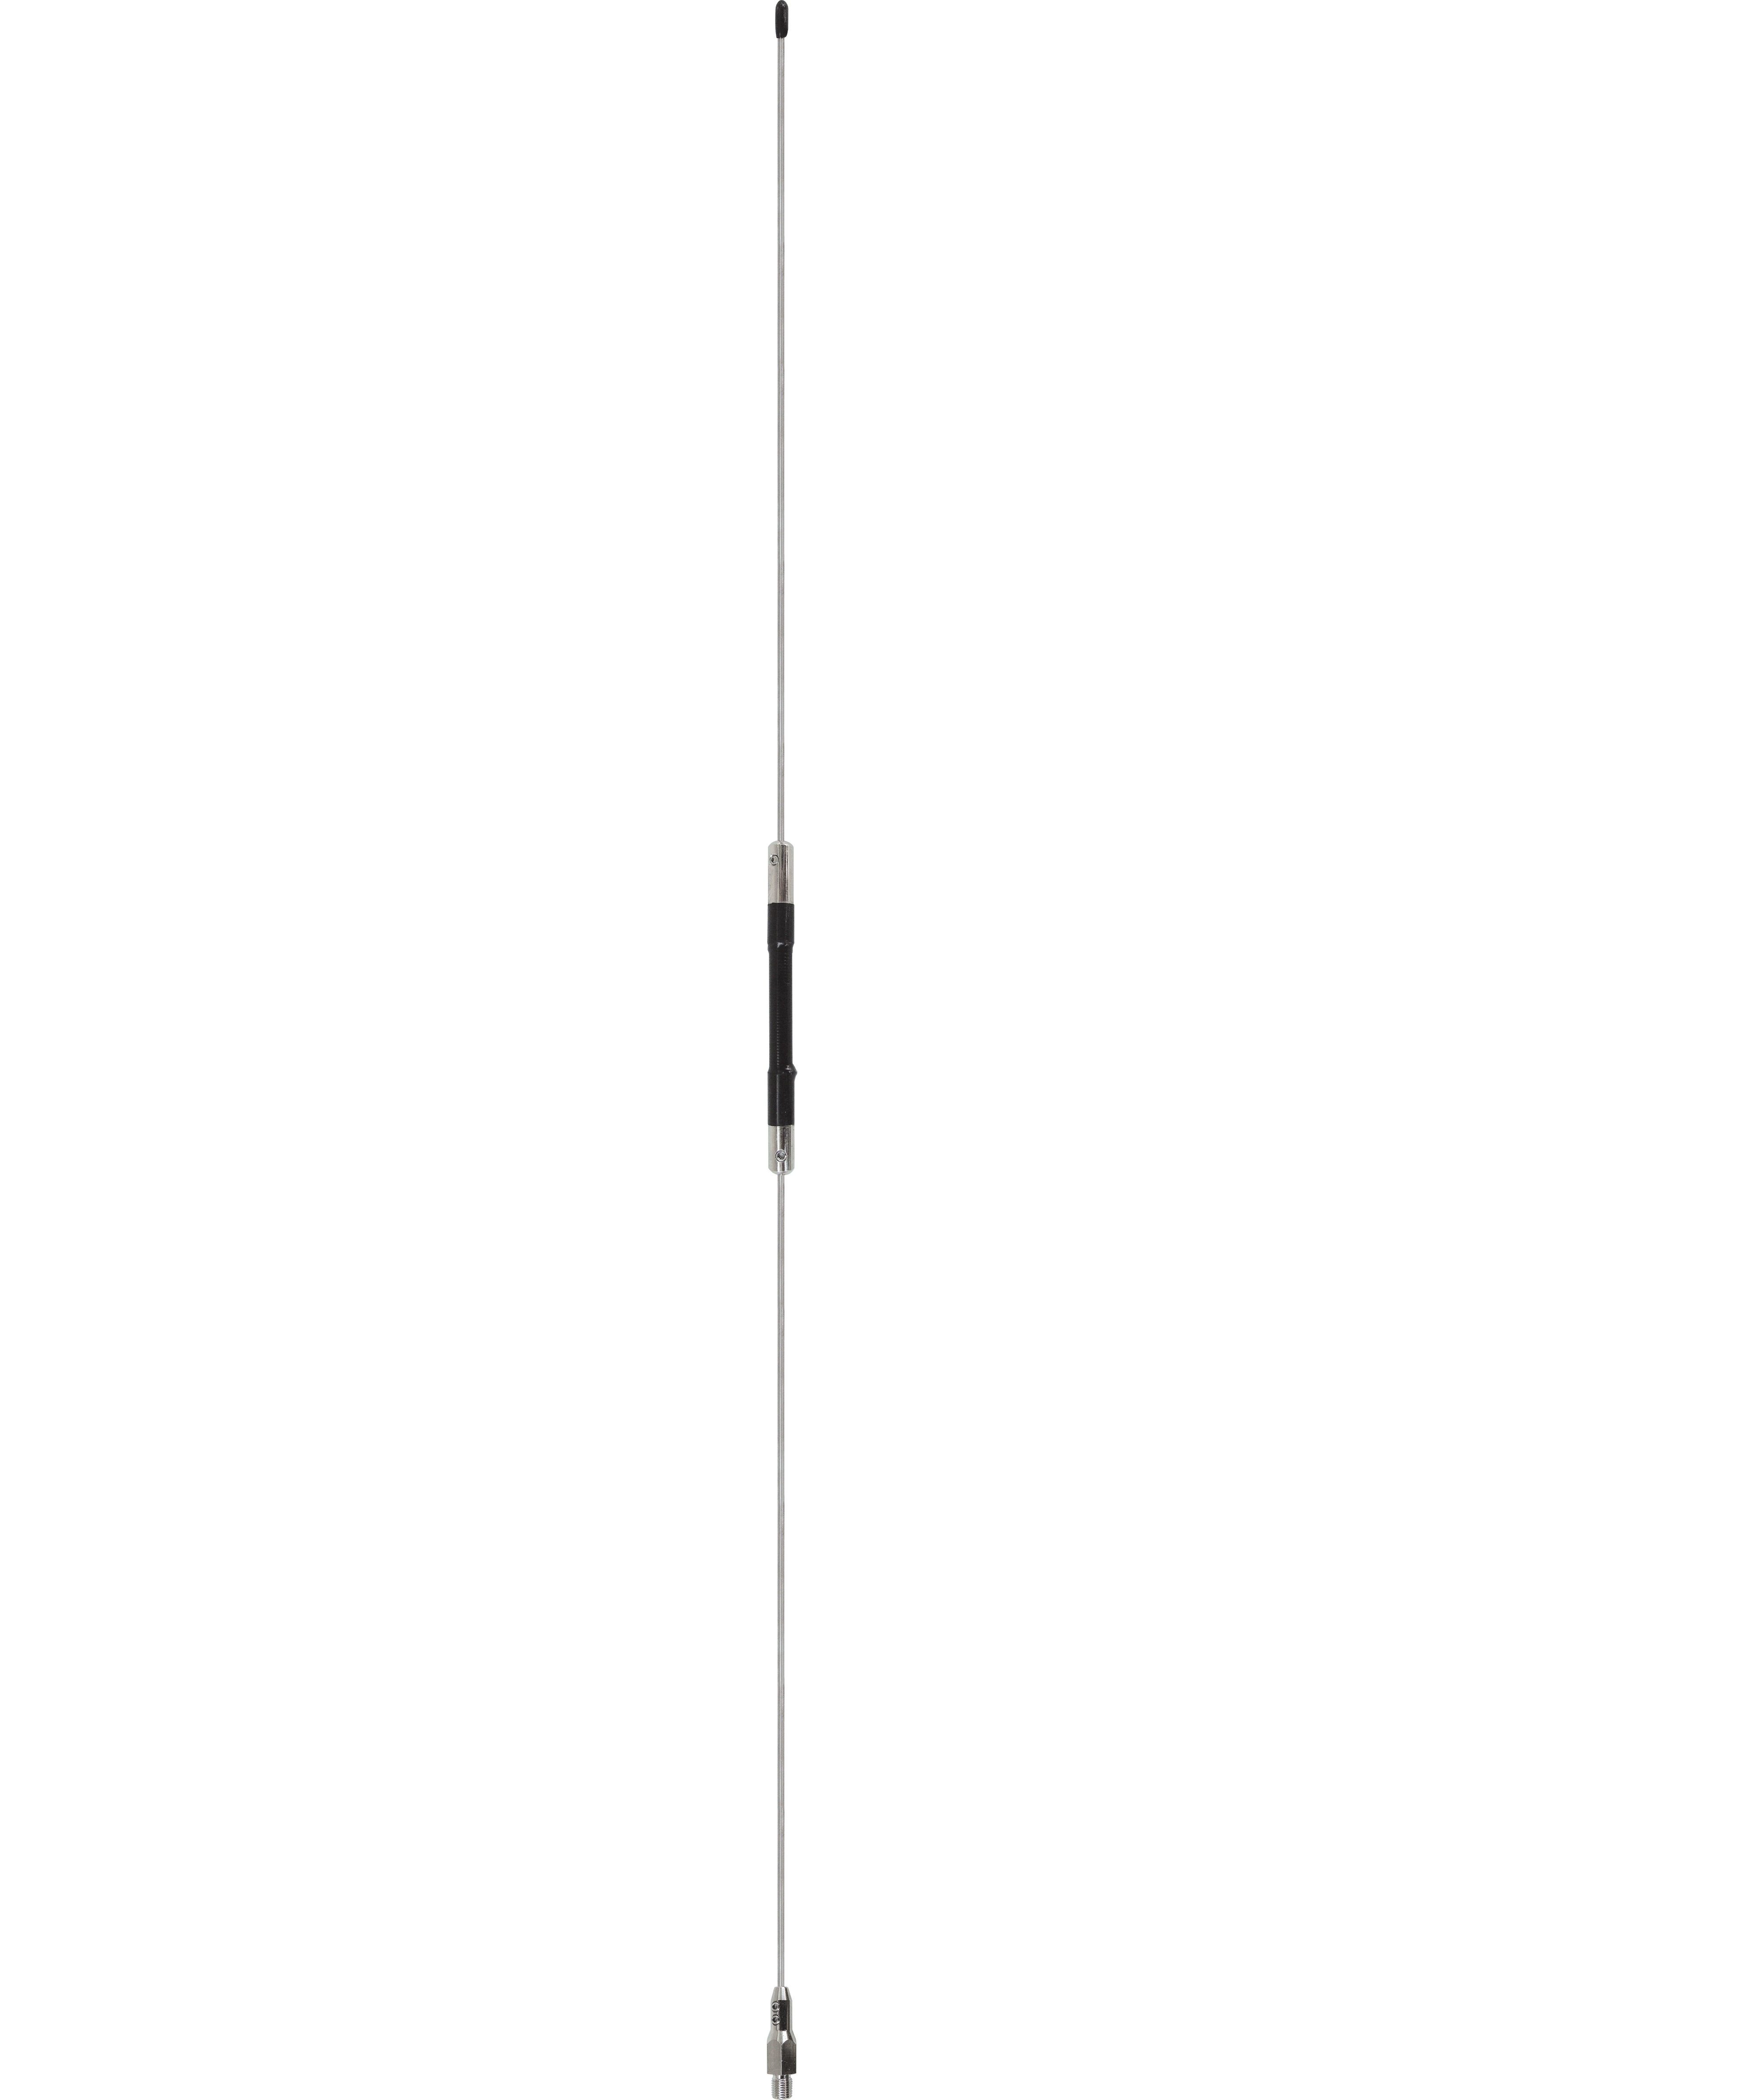 PC360 - PROCOMM 3' STAINLESS STEEL TRI-BAND SCANNER ANTENNA